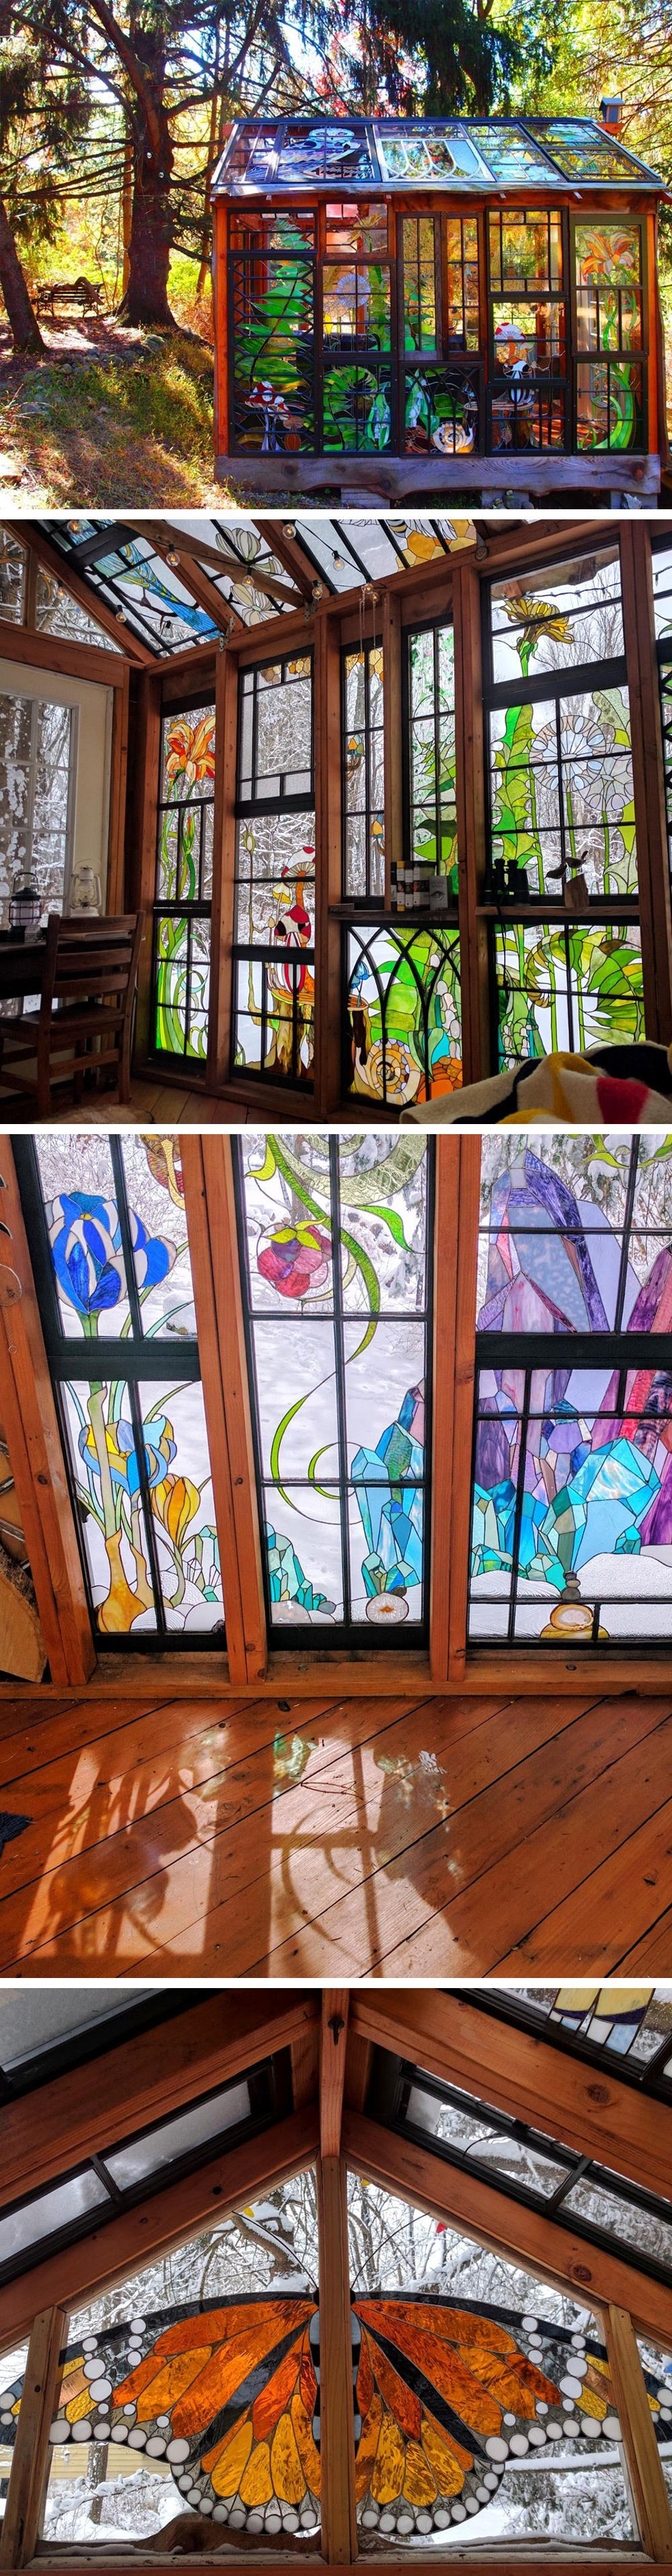 a stained glass cabin hidden in the woods by neile cooper art